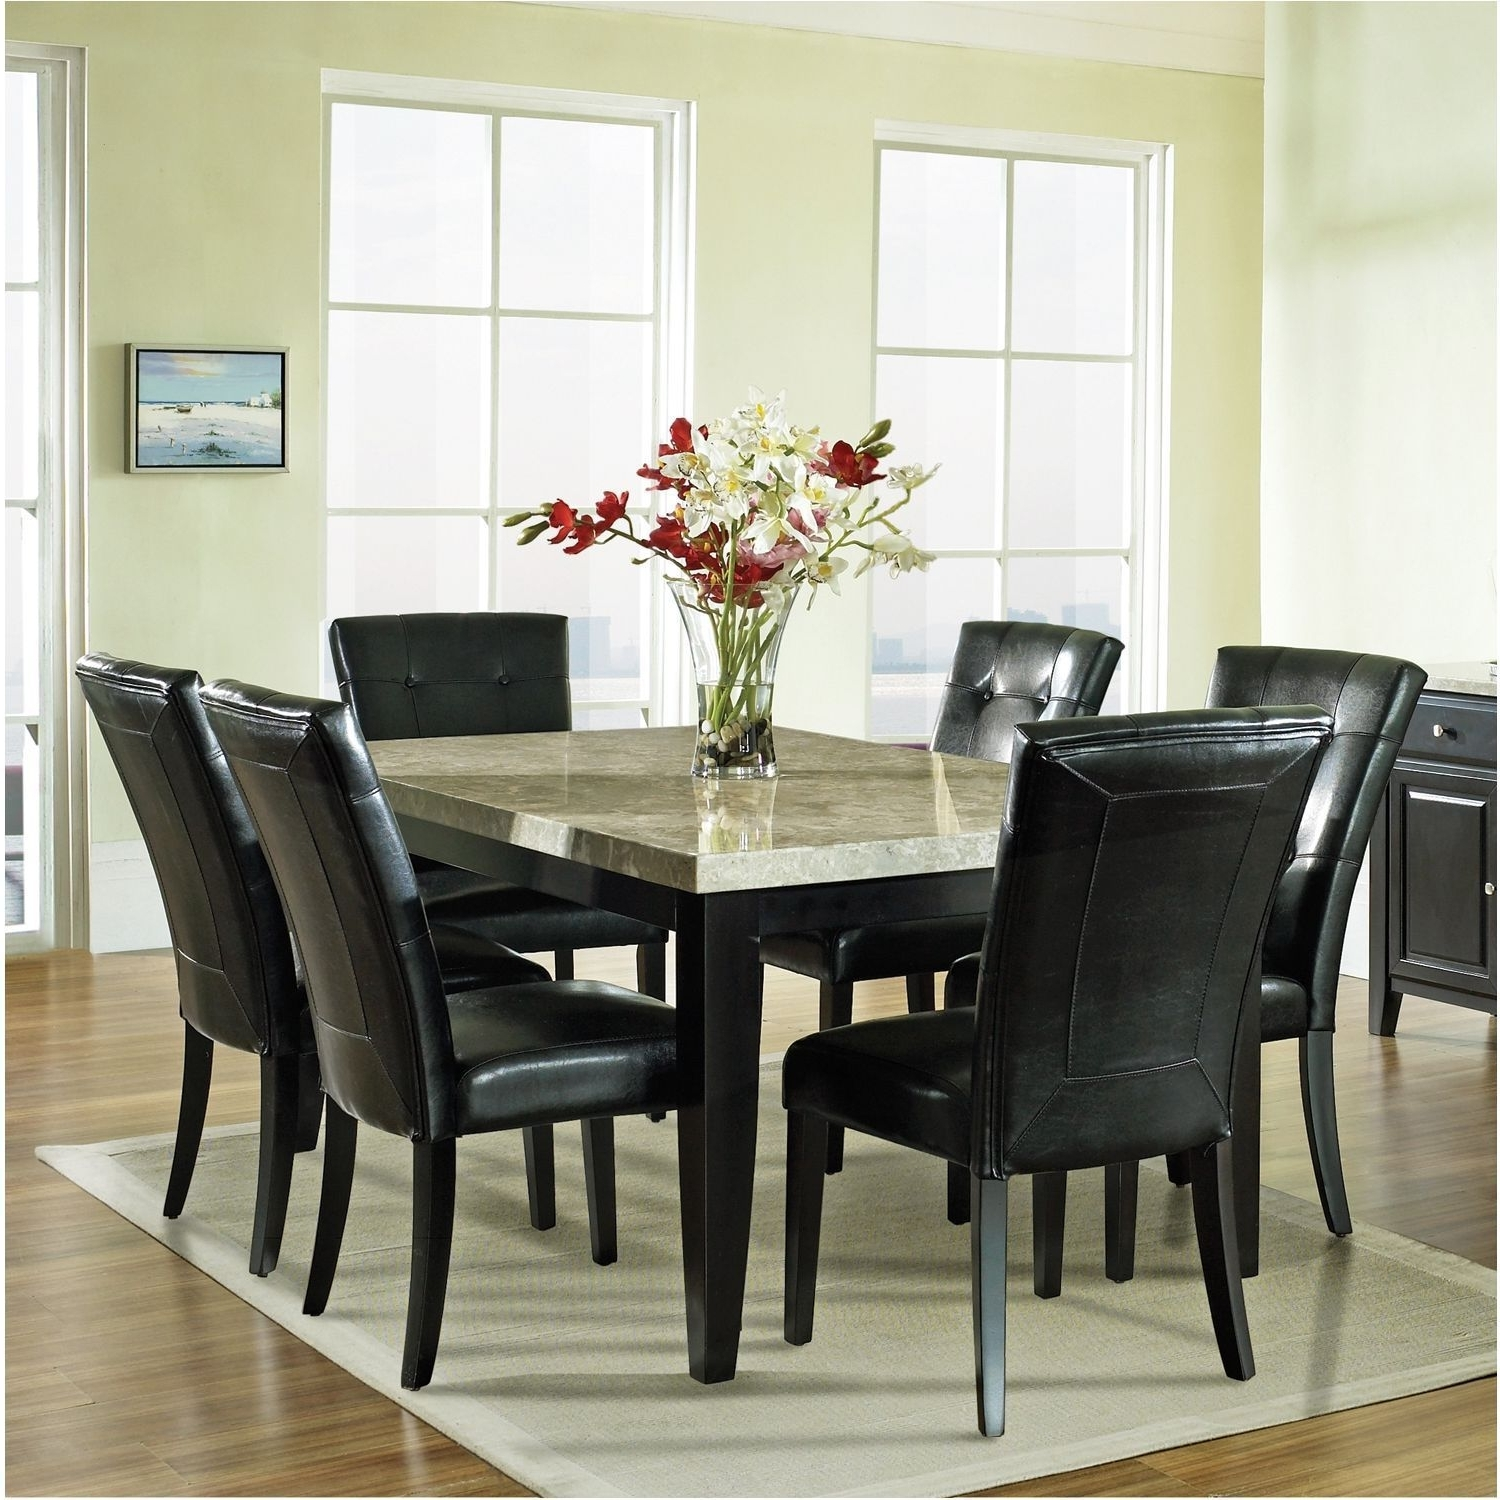 Dining Sets With Regard To Cora 7 Piece Dining Sets (View 13 of 25)